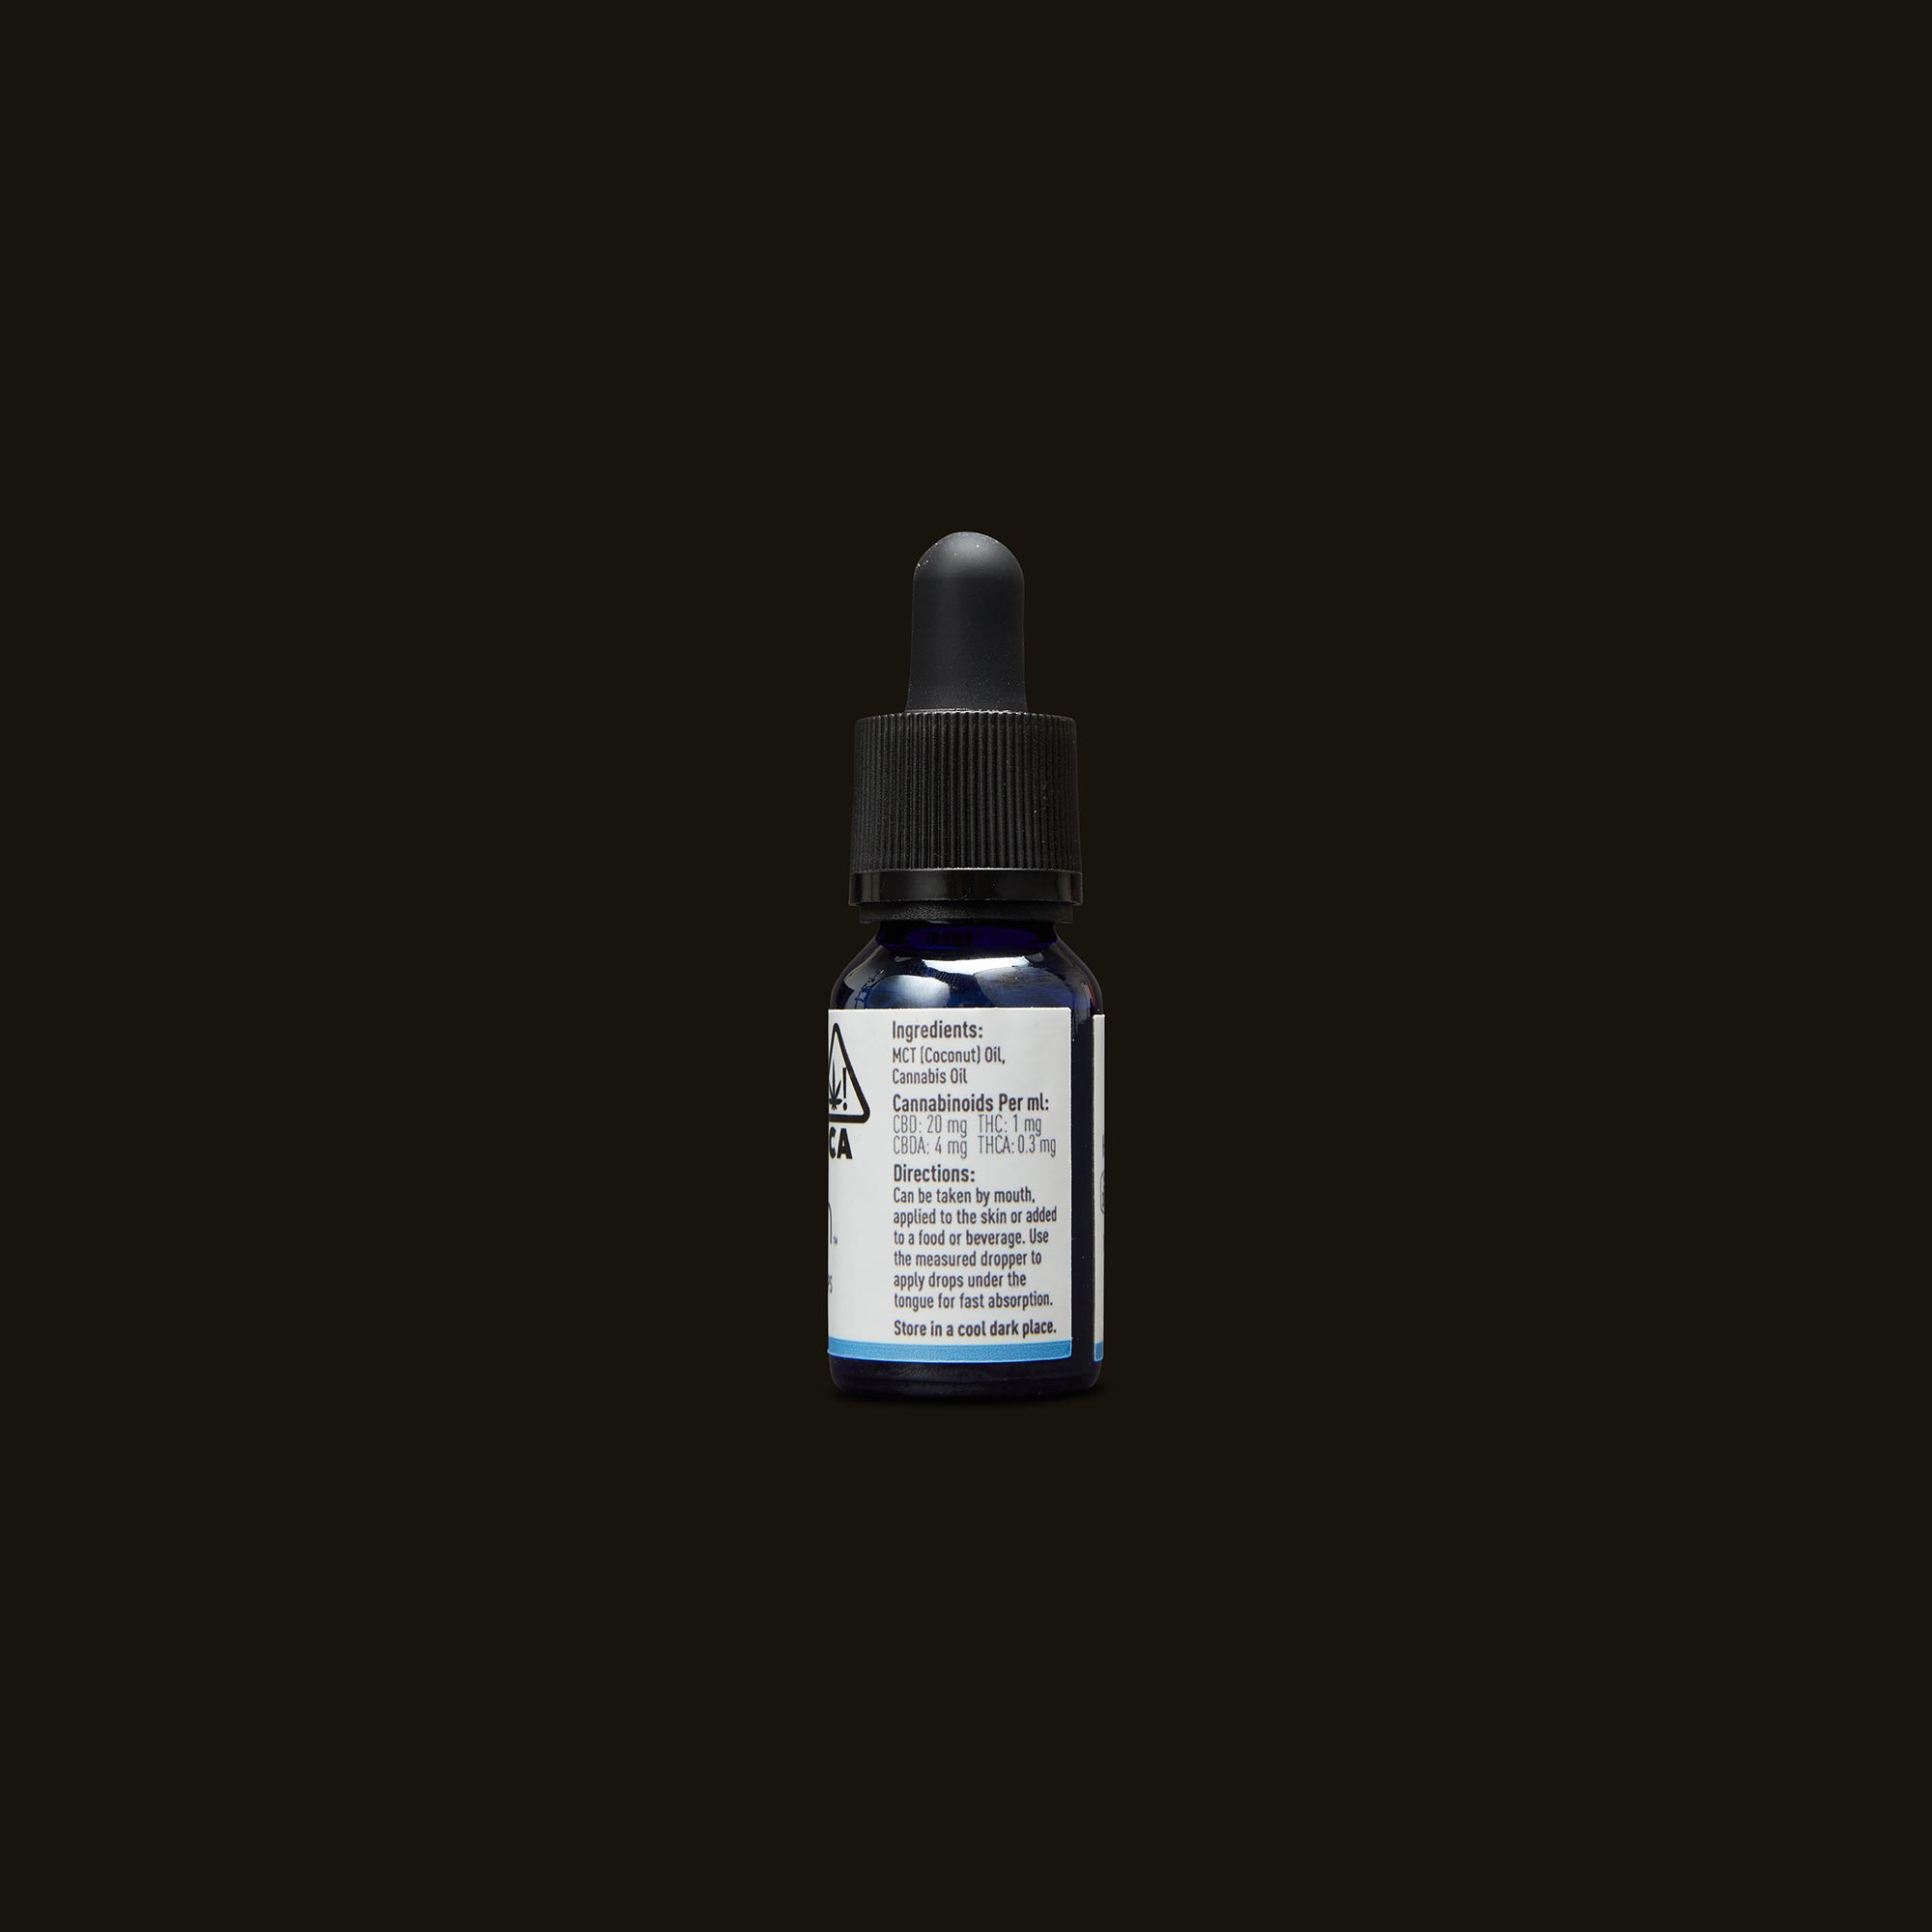 Care By Design 18:1 Full Spectrum CBD Drops - 0.5oz Ingredients